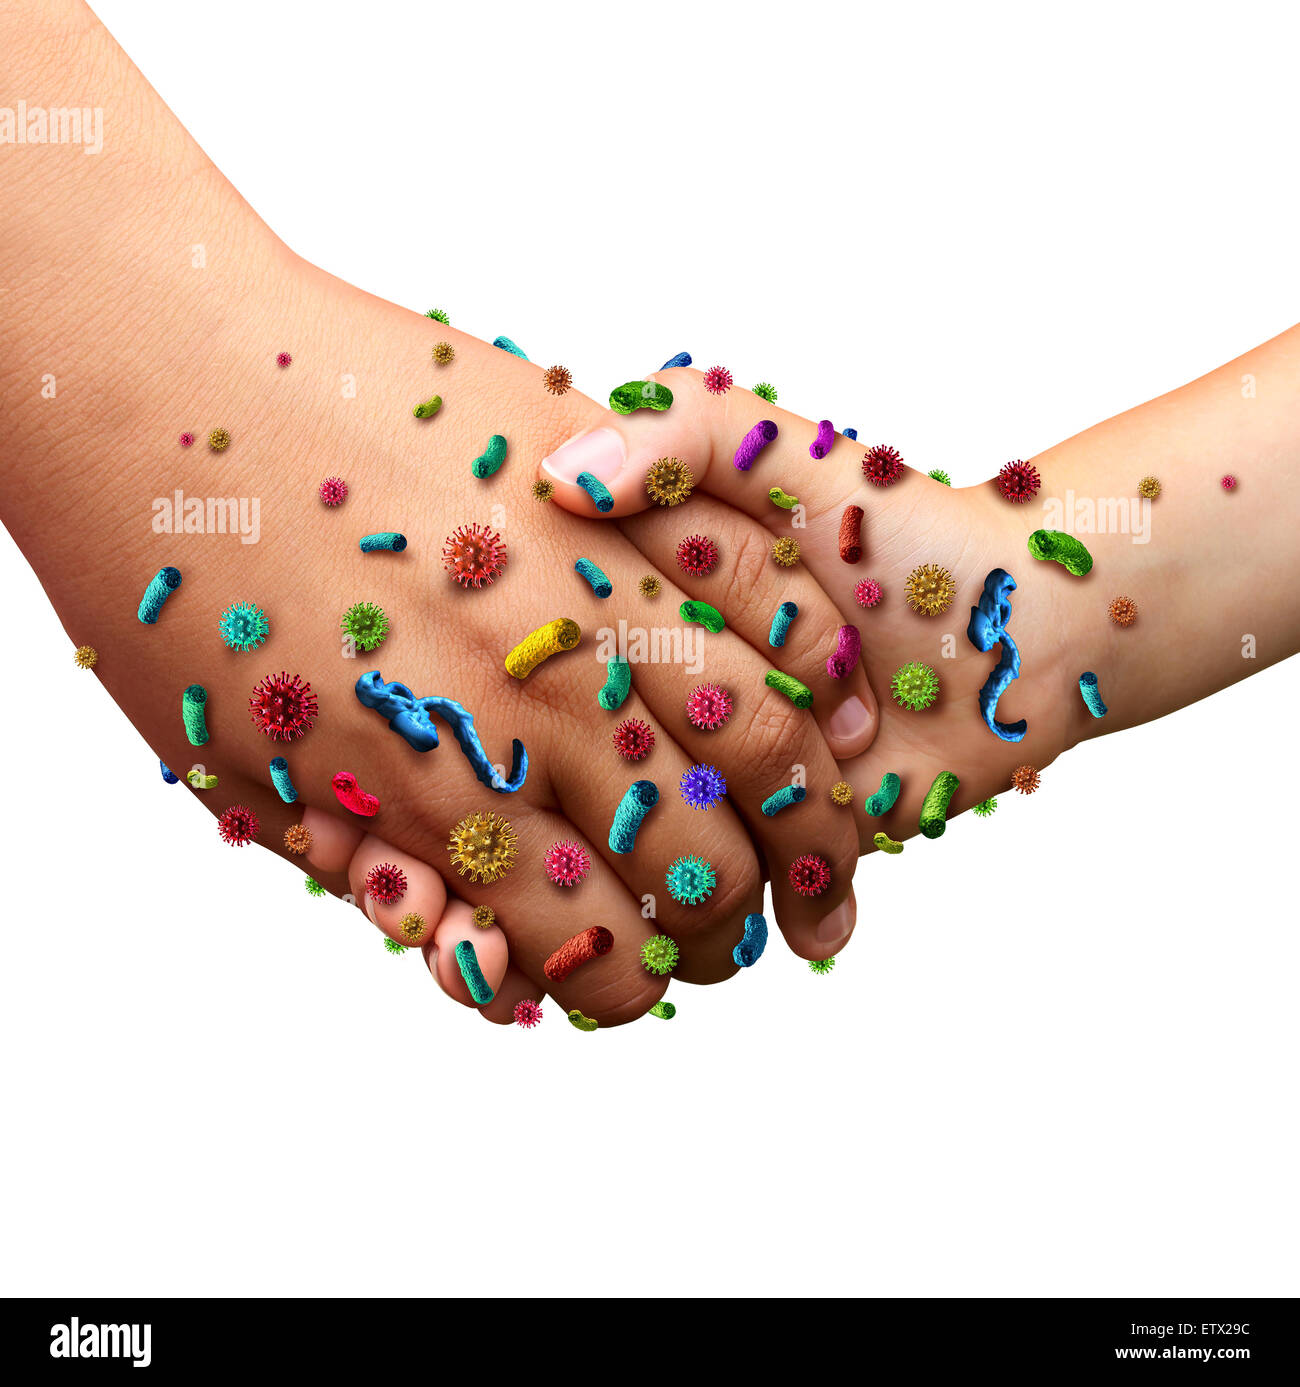 the causes and spread of infections Unit ic02 cause and spread of infection outcome 1 1identify the differences between bacteria, viruses, fungi, parasites bacteria – bacteria are extremely small singular organisms which are found almost everywhere.